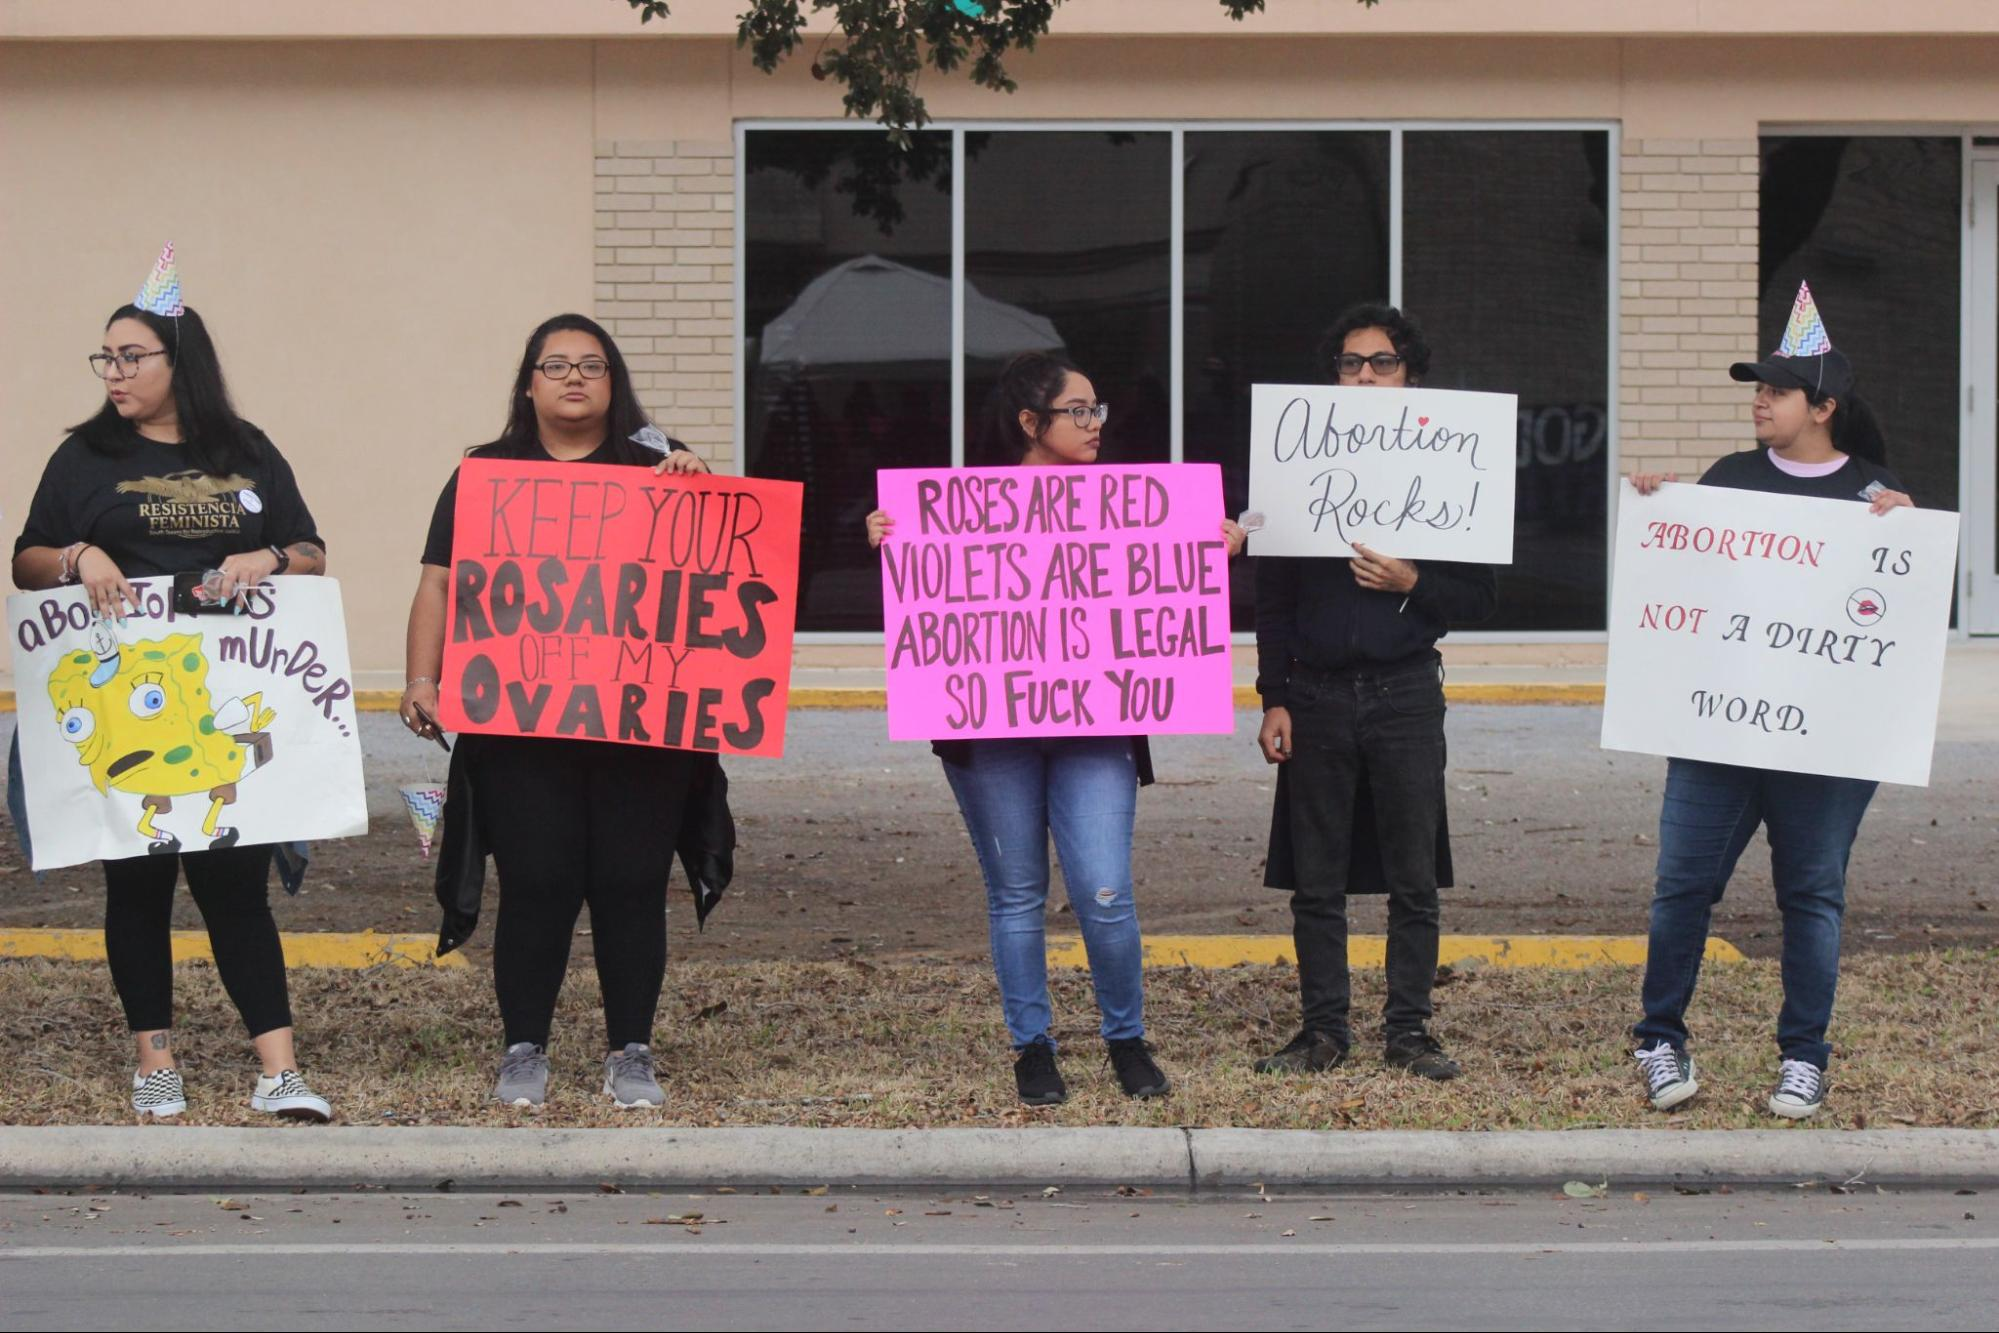 We're Still Here March 2019 reproductive justice supporters holding signs showing solidarity for abortion and Whole Women's Health Clinic in McAllen. 📷 by Freddy Jimenez.